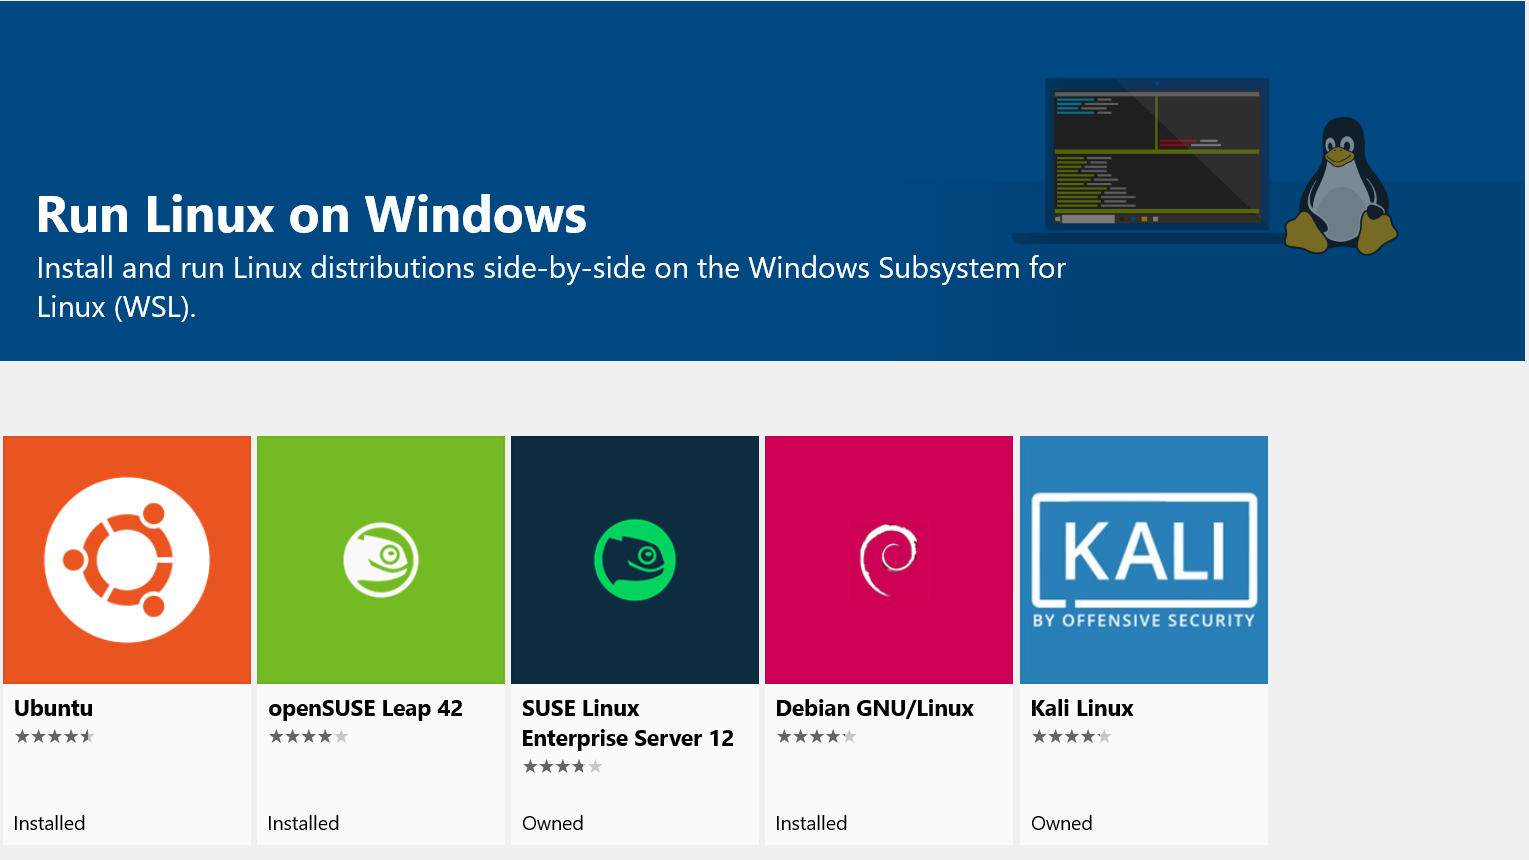 linux ubuntu windows windows-subsystem-for-linux wsl